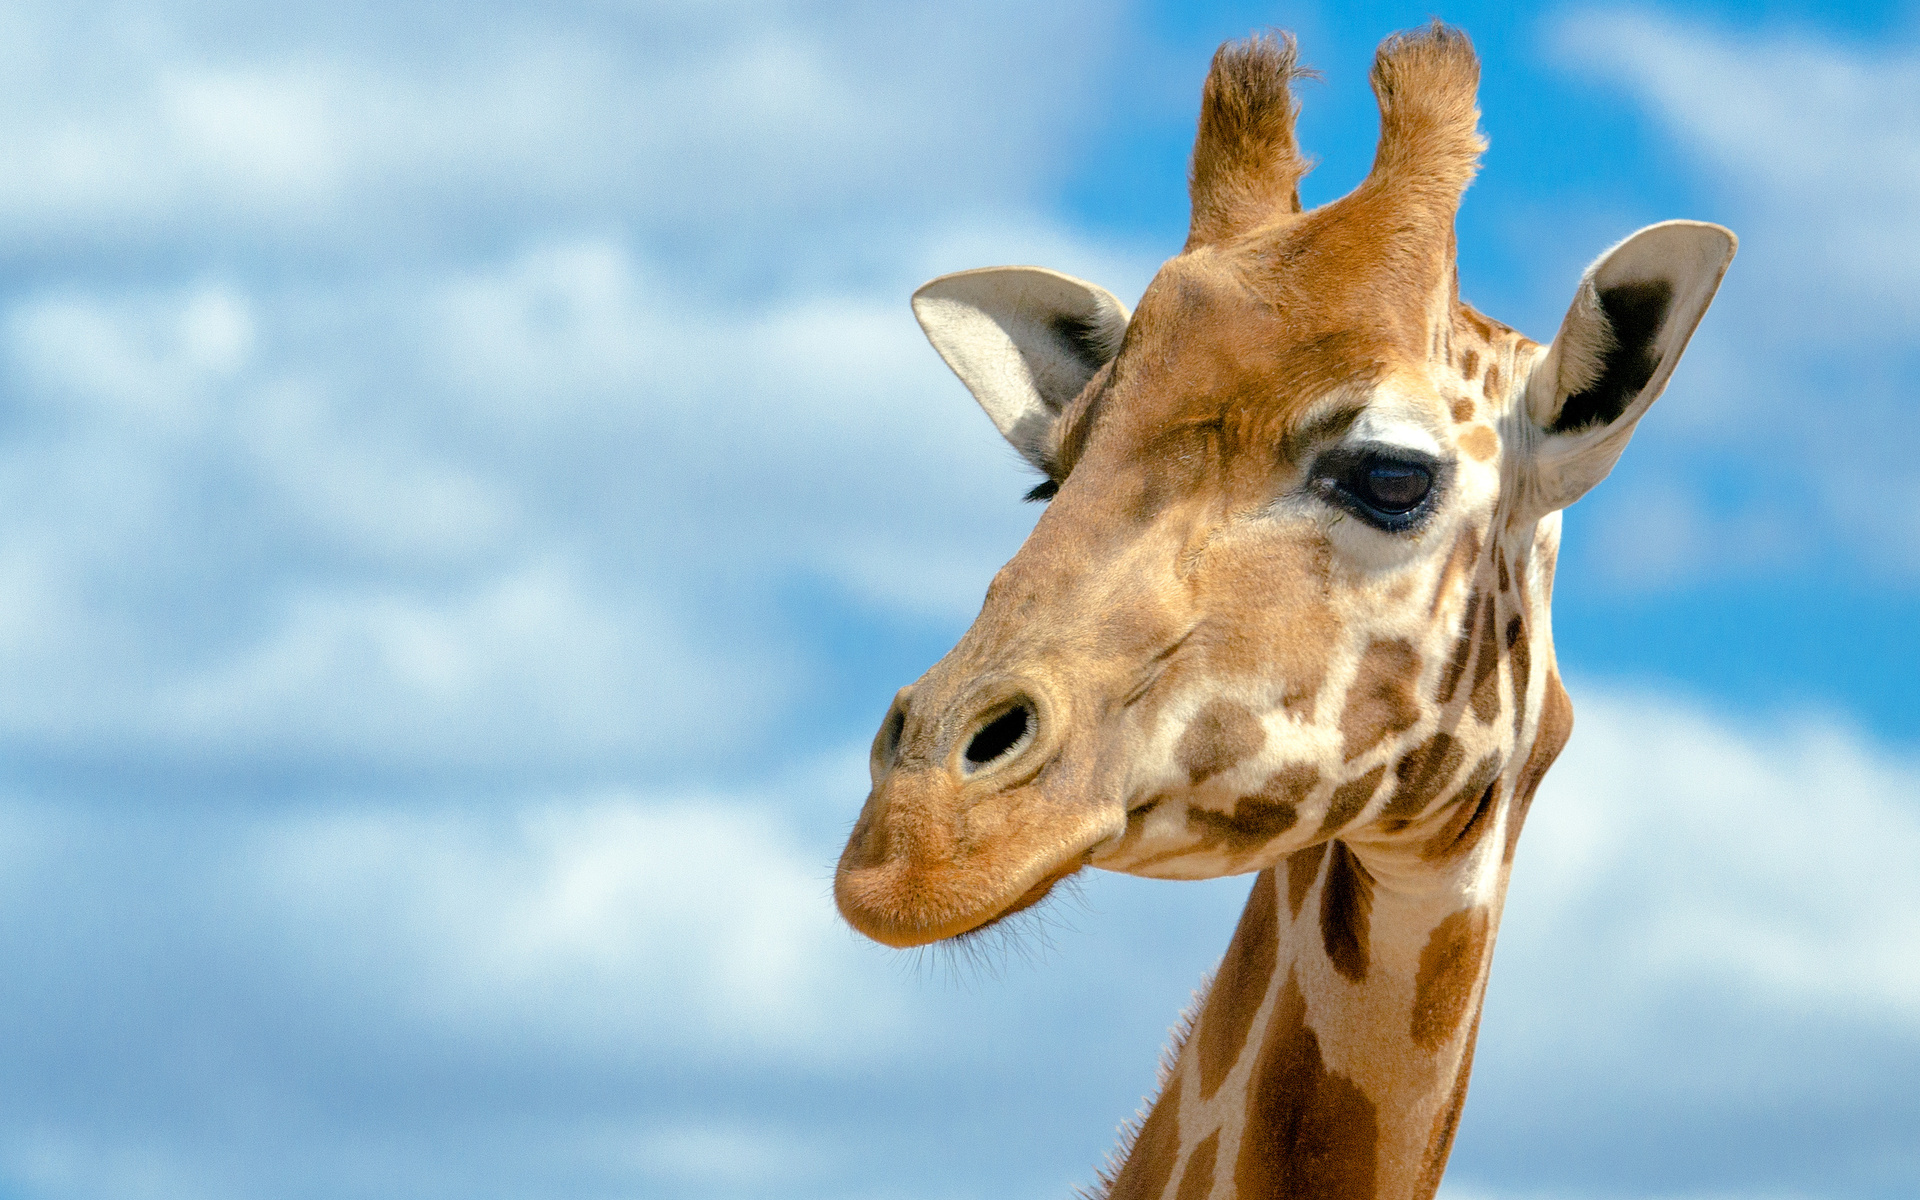 beautiful colse up image of giraffe free download best desktop background hd widescreen wallpapers of giraffe